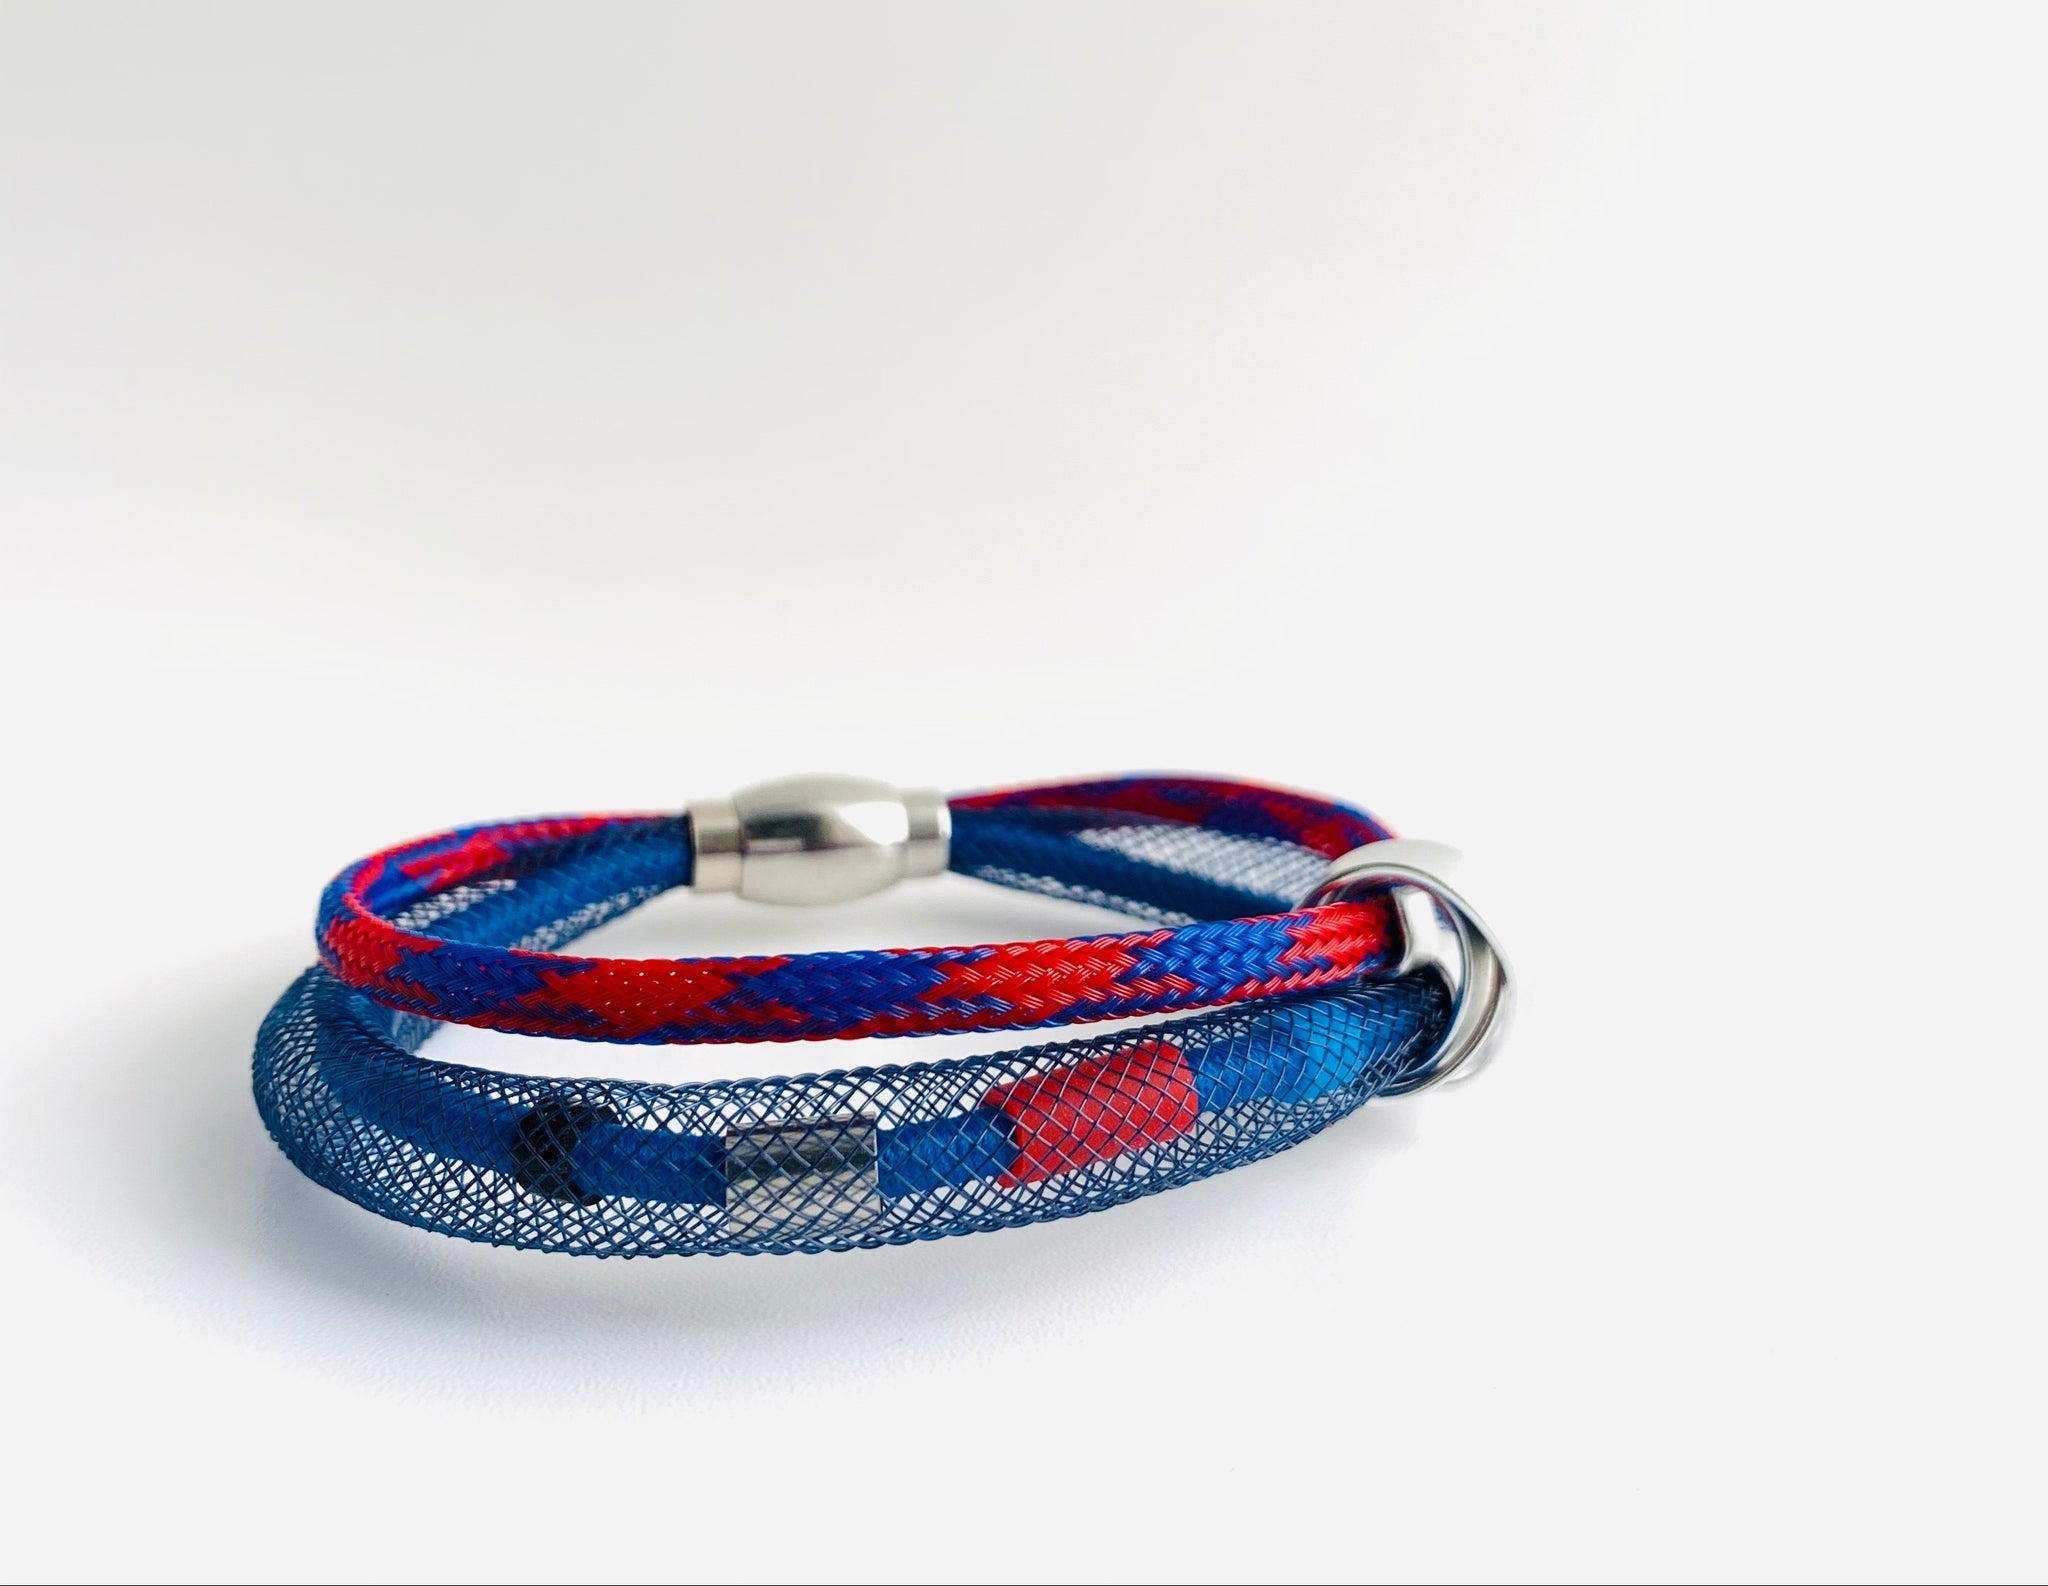 Netted Cable Connect Bracelet in blue